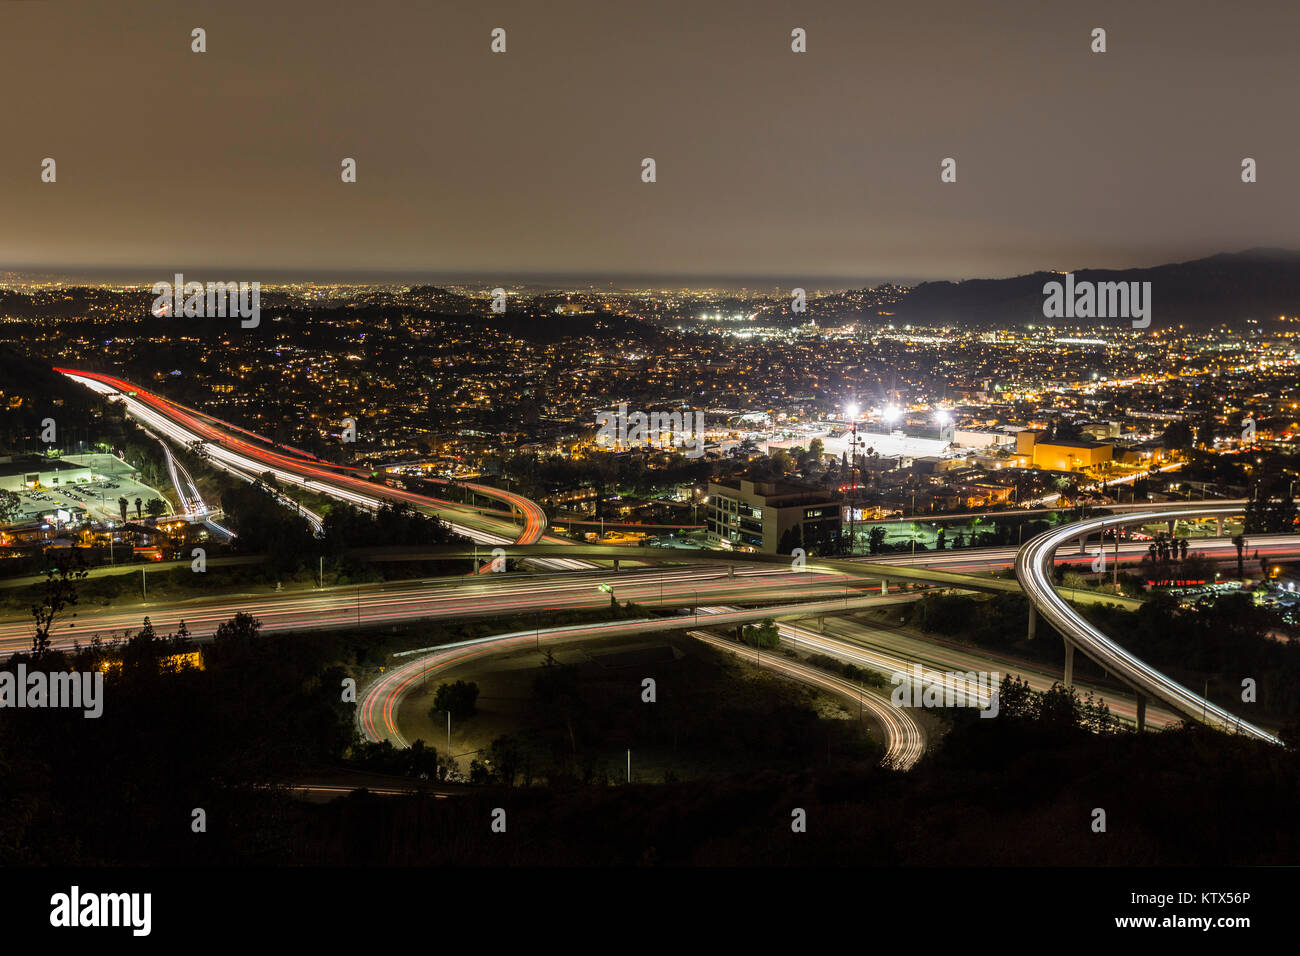 Night view of the Ventura 134 and 2 Glendale freeways in the Eagle Rock neighborhood of Los Angeles, California. - Stock Image